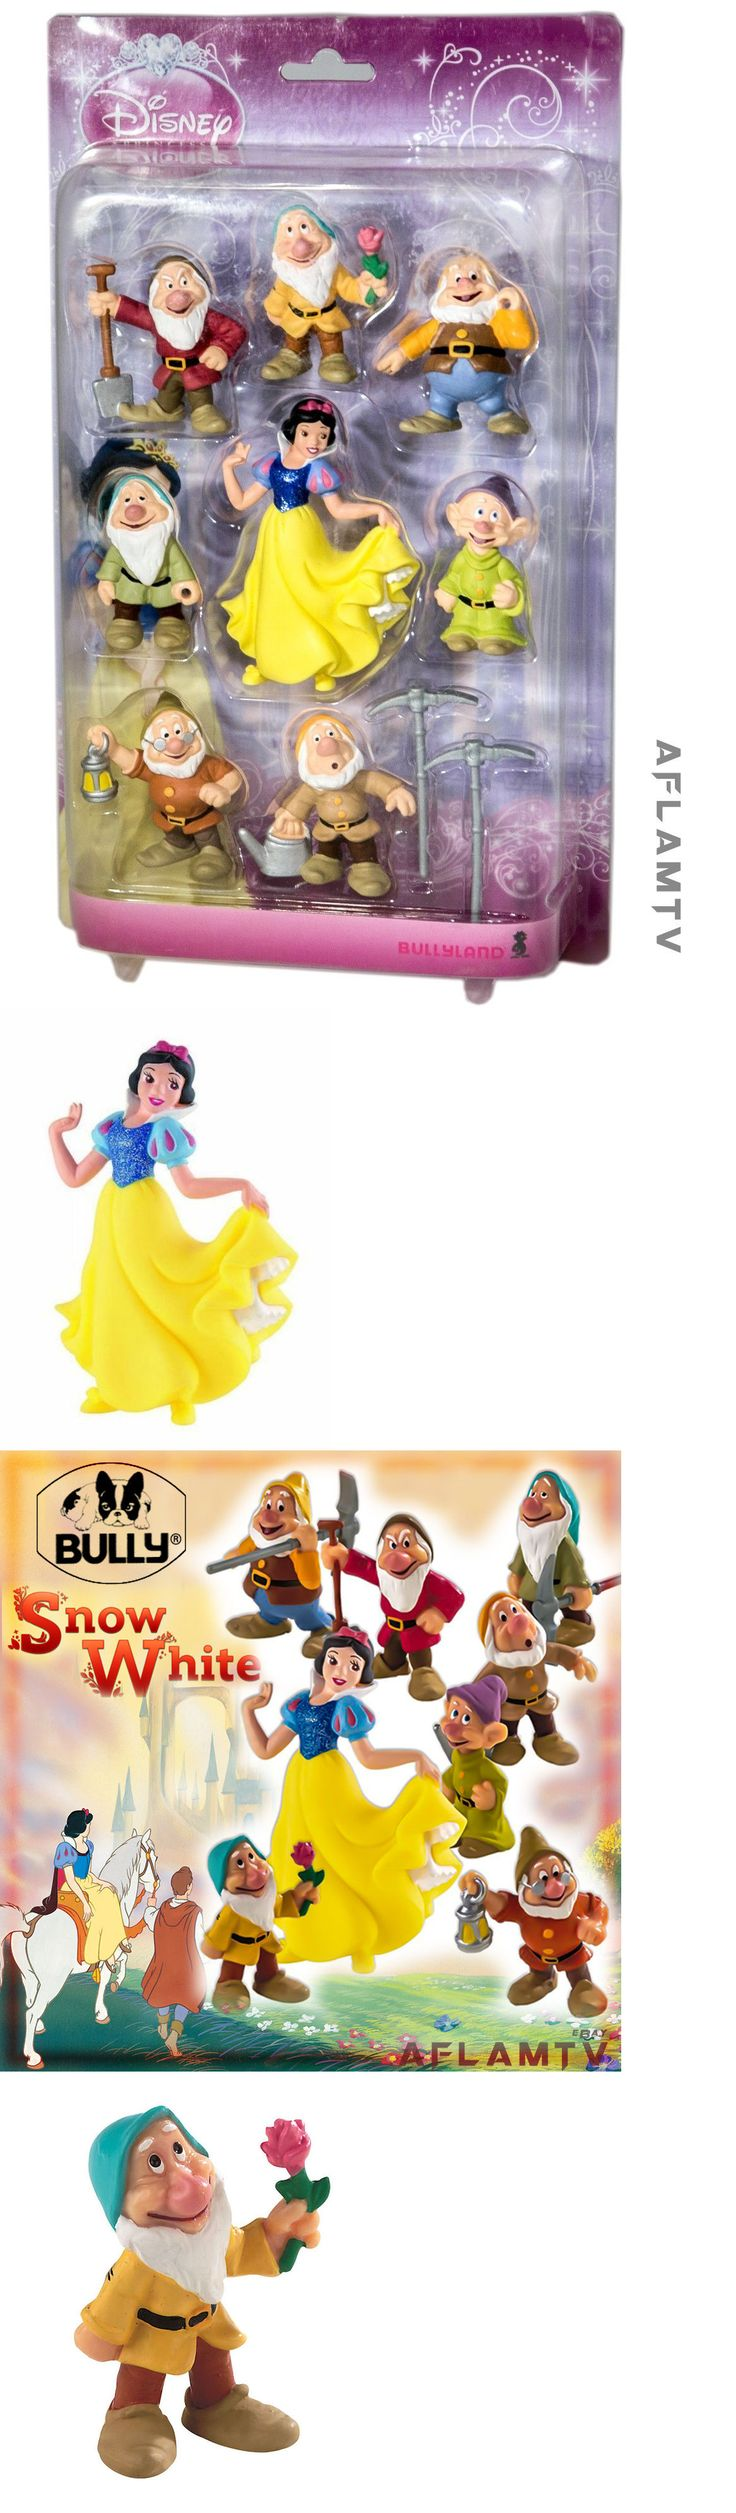 Snow White 19222: Snow White And The Seven Dwarfs Bullyland Figures Cake Toppers Disney Princess -> BUY IT NOW ONLY: $85.49 on eBay!